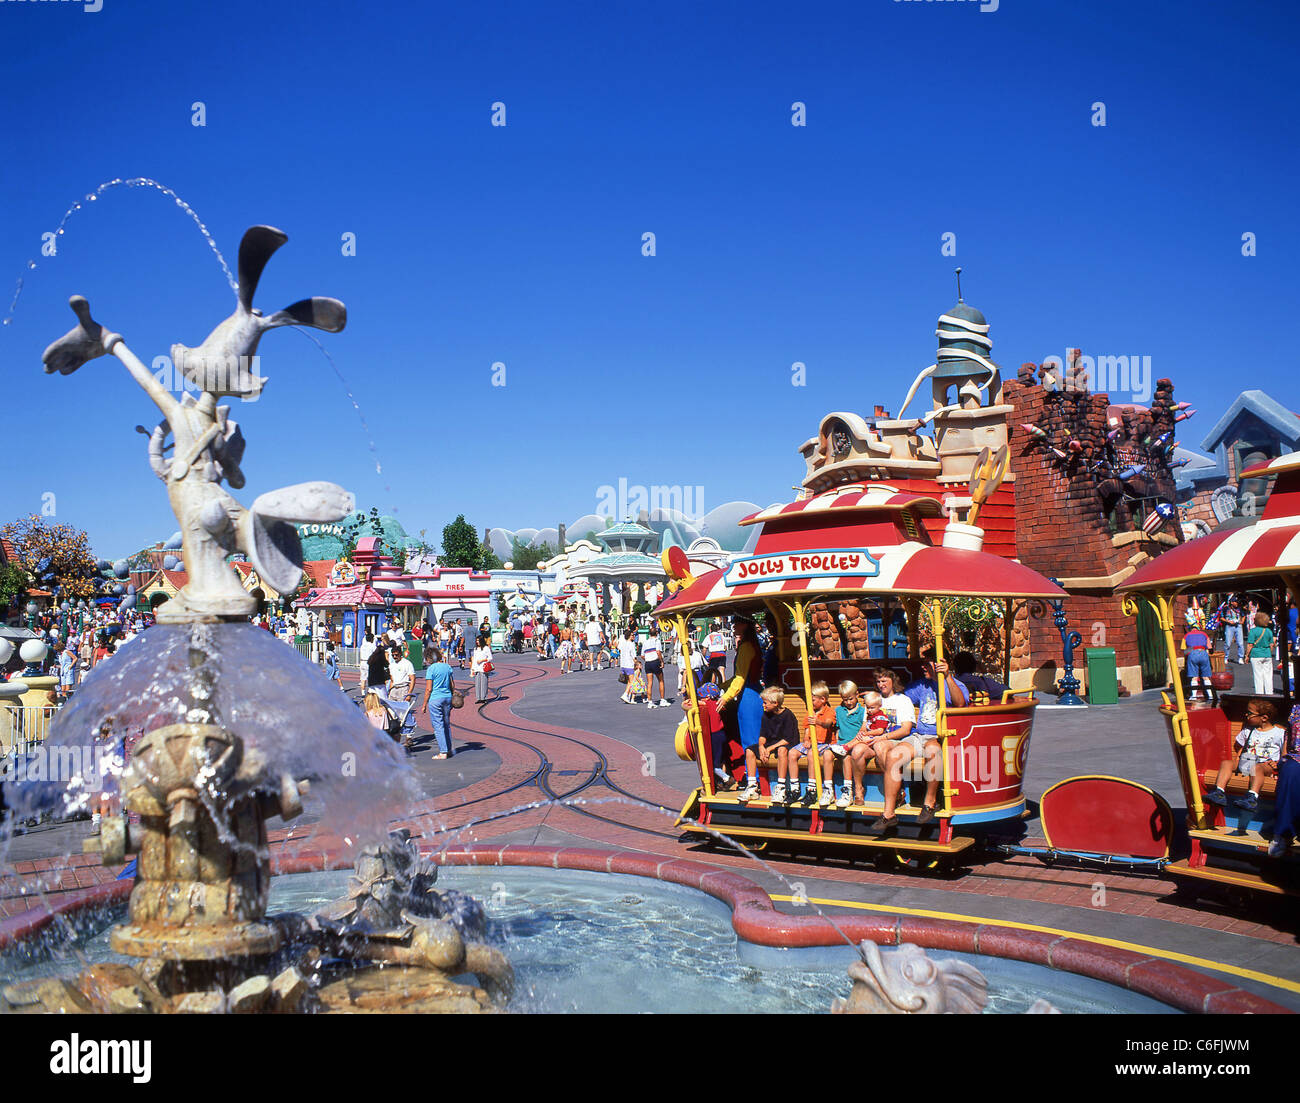 Jolly Trolley and fountain, Mickey's Toontown, Disneyland, Anaheim, California, United States of America Stock Photo